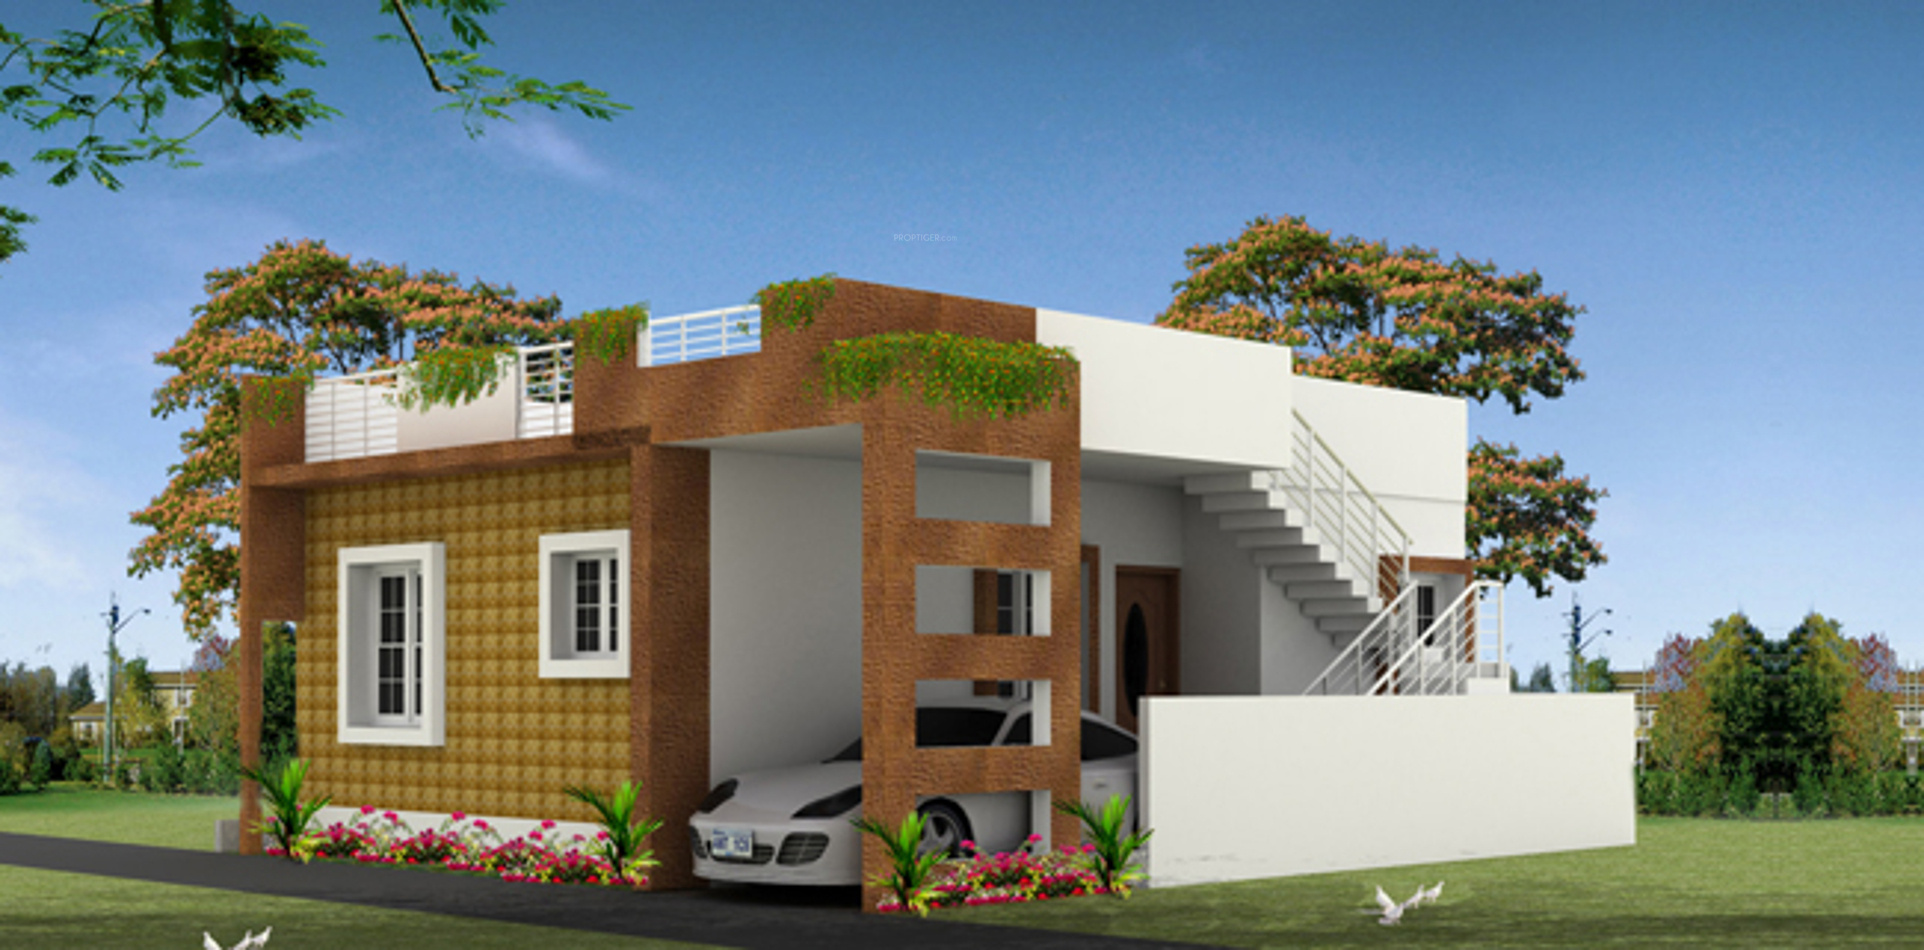 South Facing Ground Floor Elevation : Sq ft bhk t villa for sale in renaatus projects